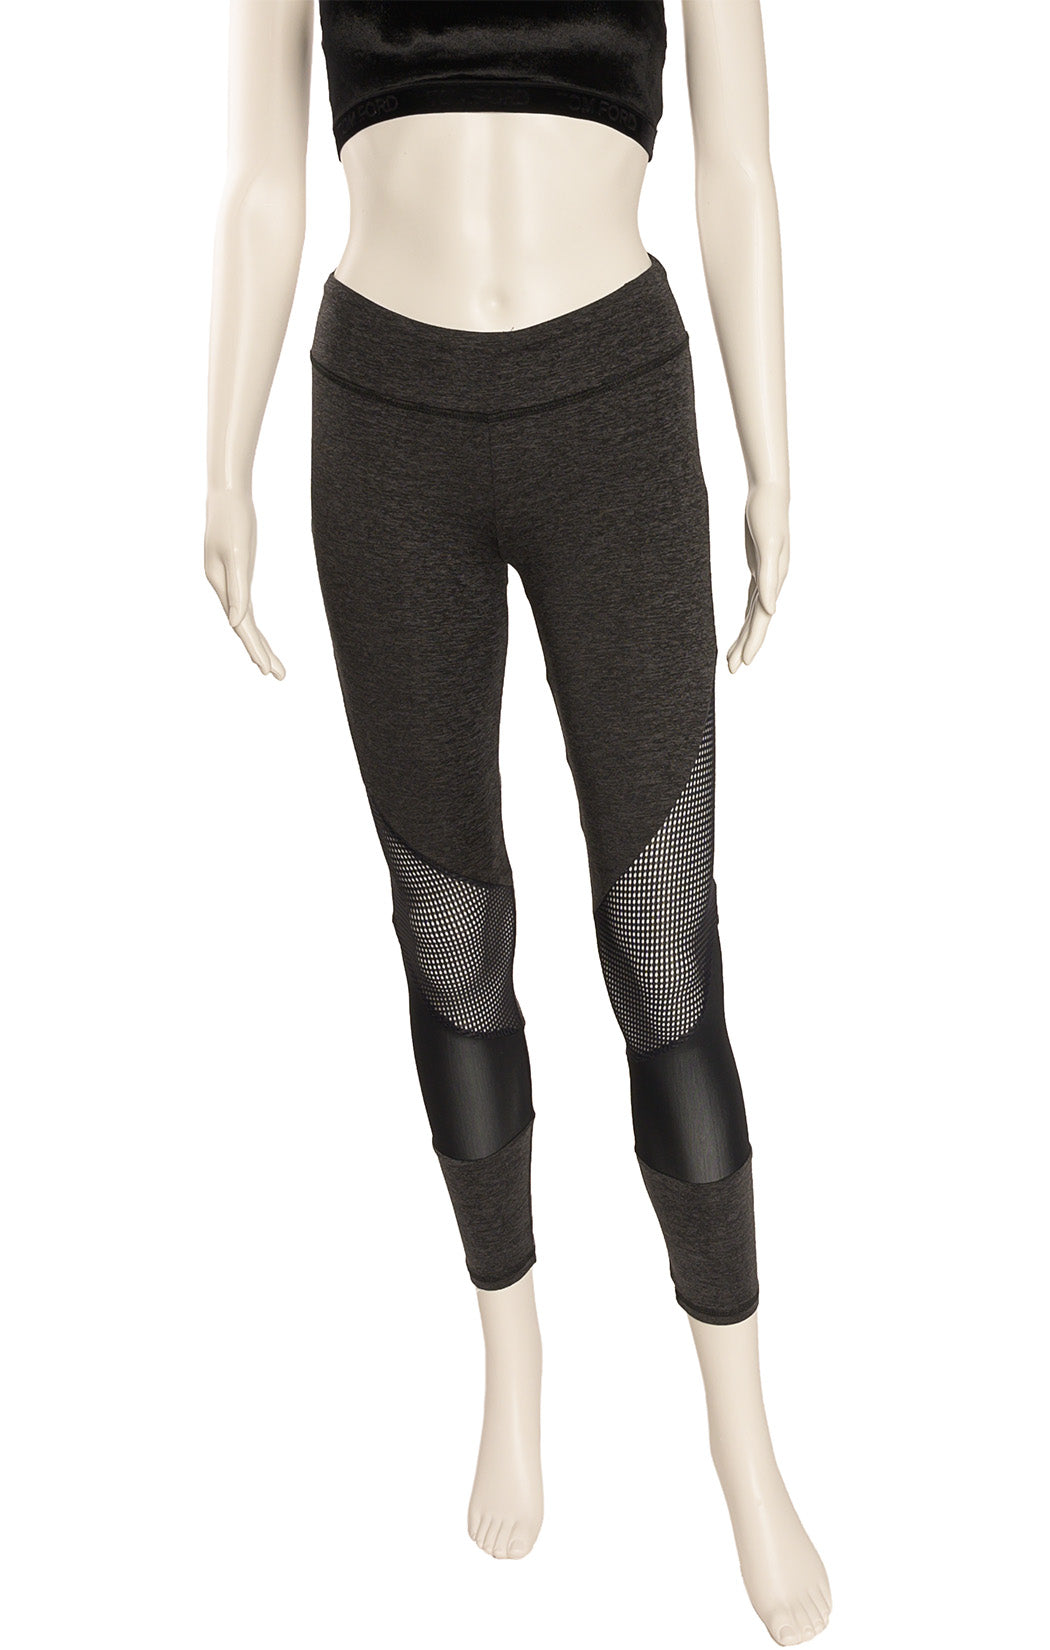 Front view of LANSTON Leggings Size: XS